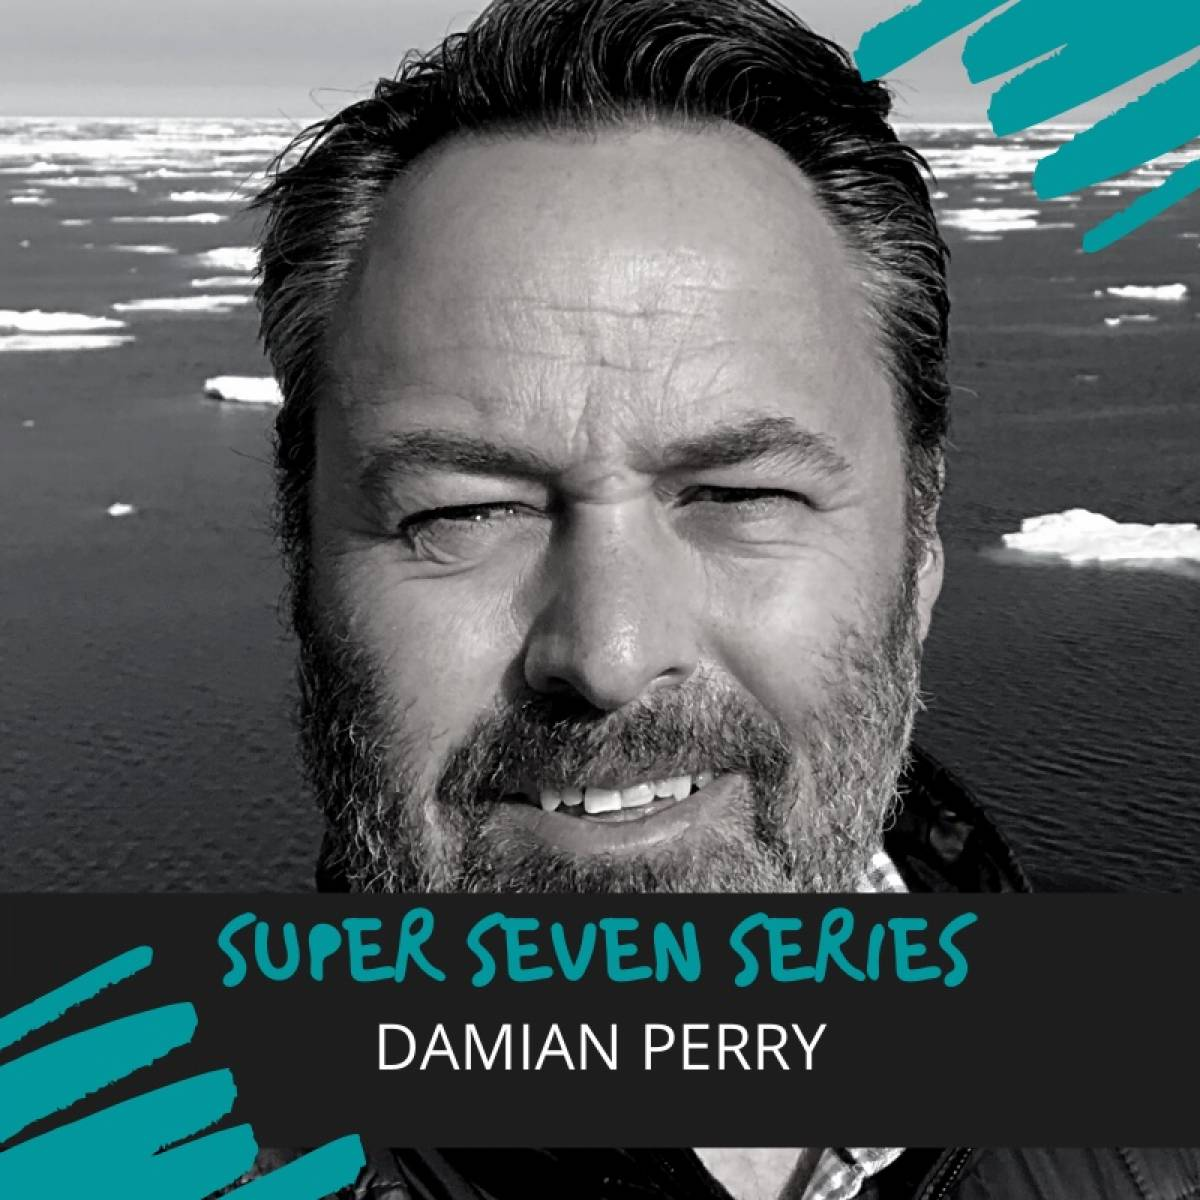 The Super Seven Series – Damian Perry